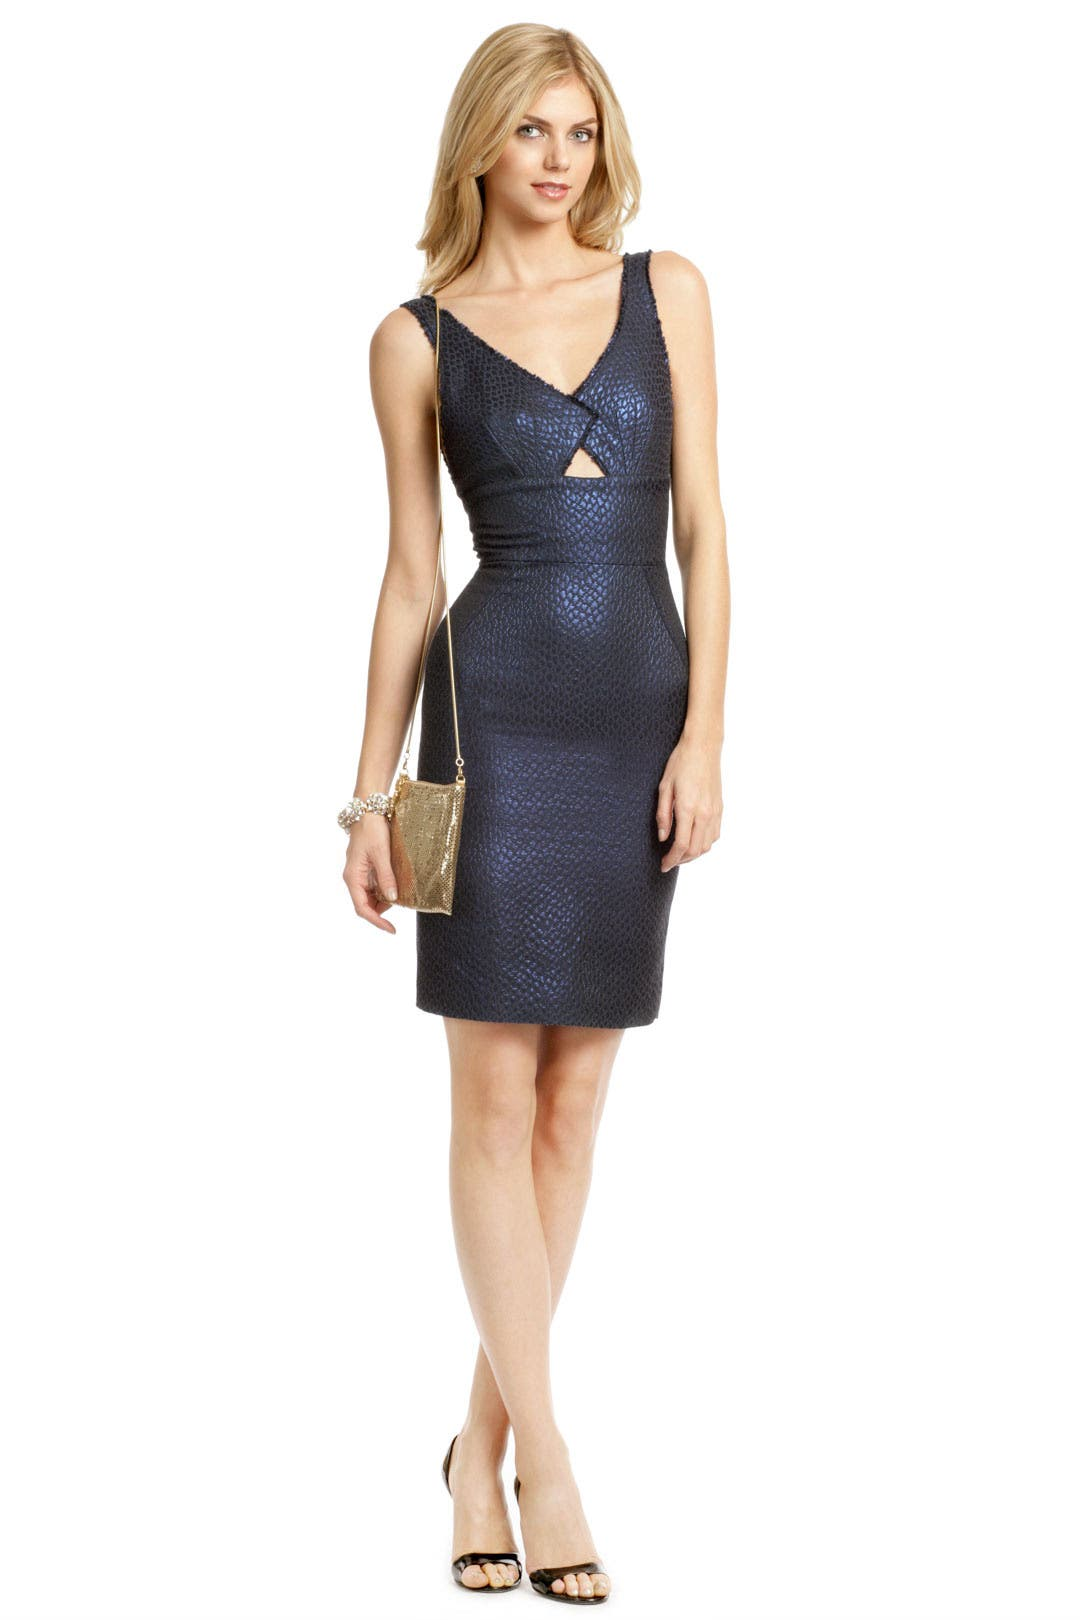 On Edge Dress by Z Spoke Zac Posen